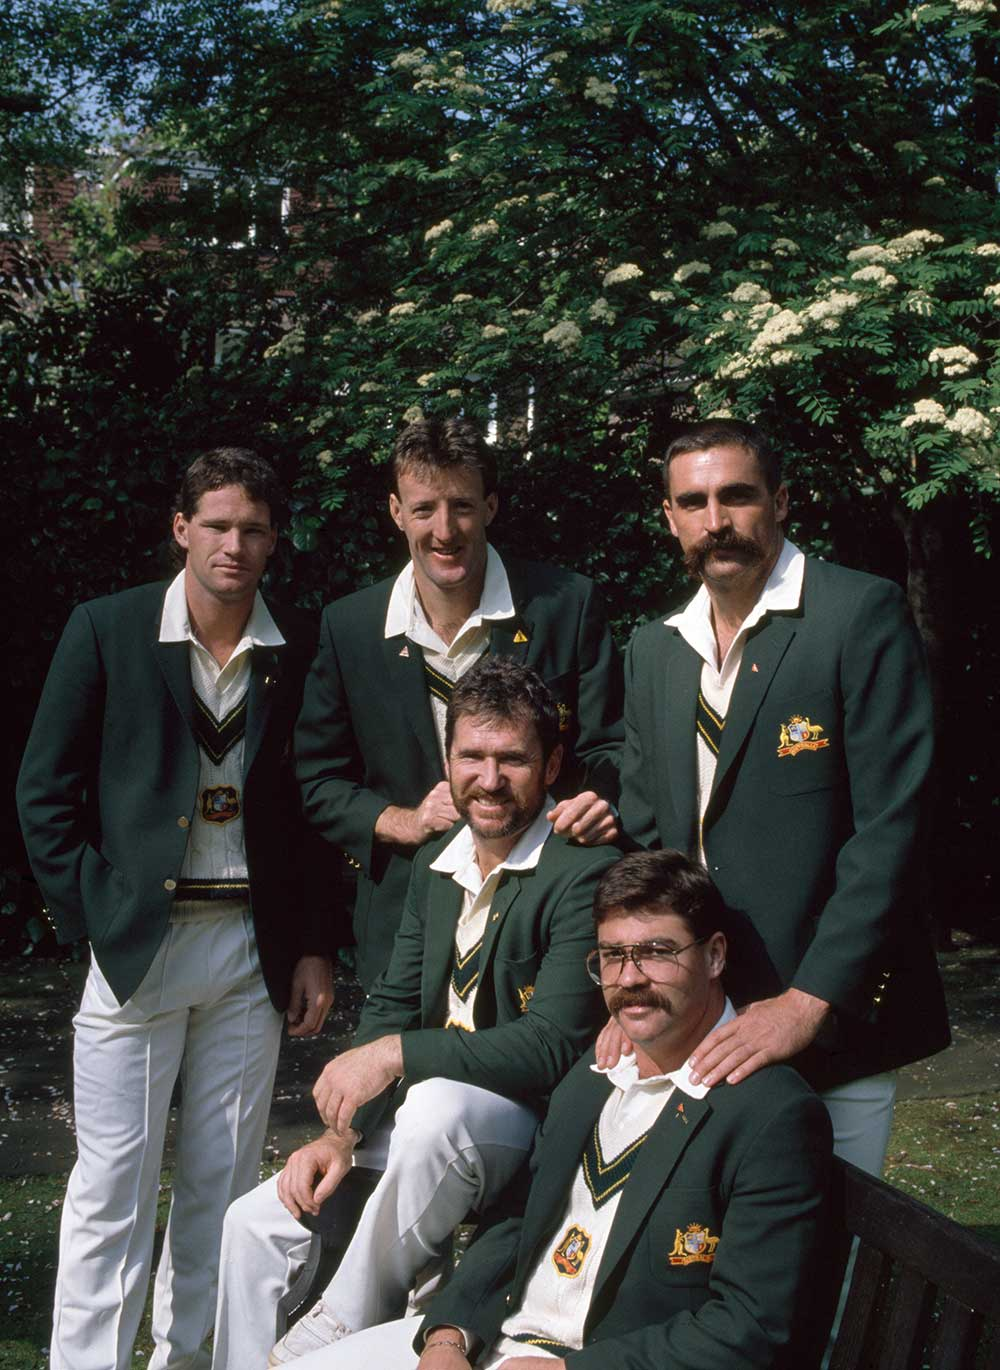 Jones, Lawson, Hughes, Border and Boon on the '89 Ashes tour // Getty